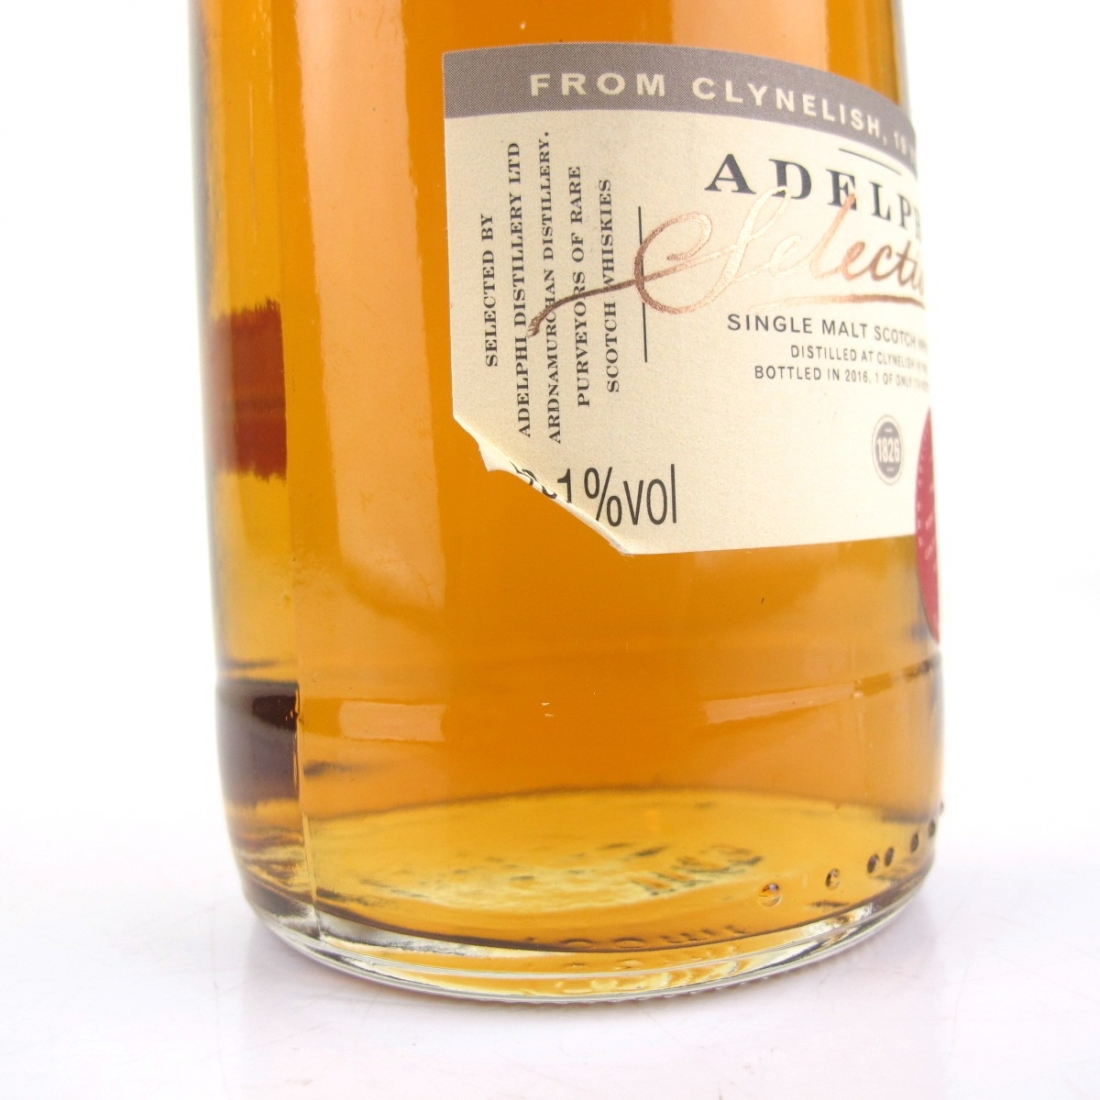 Clynelish 1996 Adelphi 19 Year Old